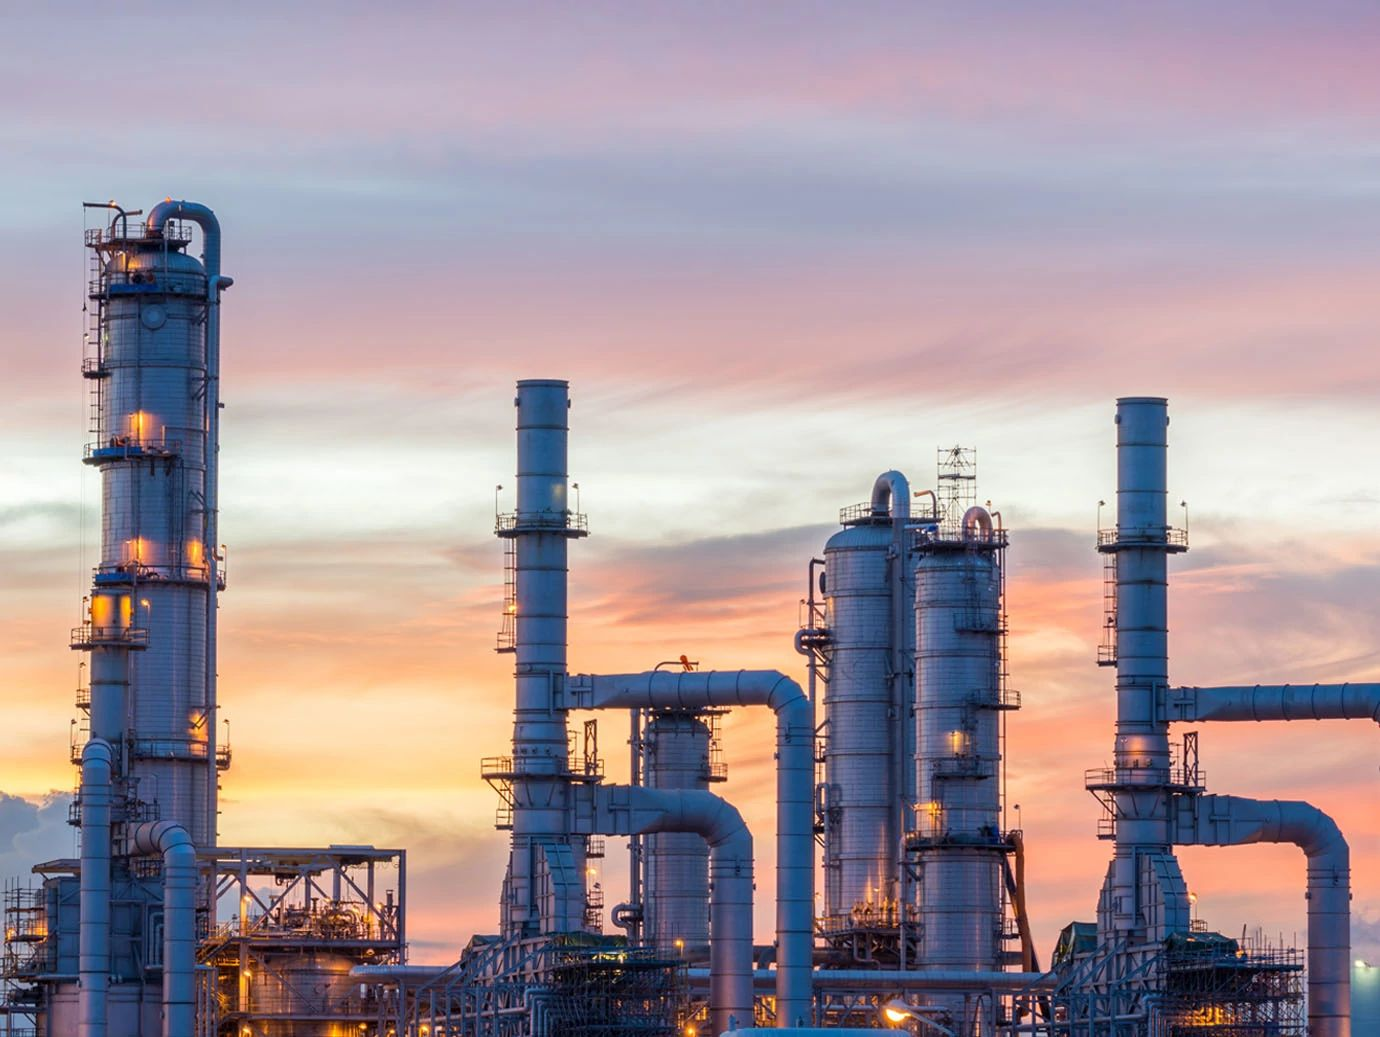 Increasing Efficiency and Reliability Through Innovation